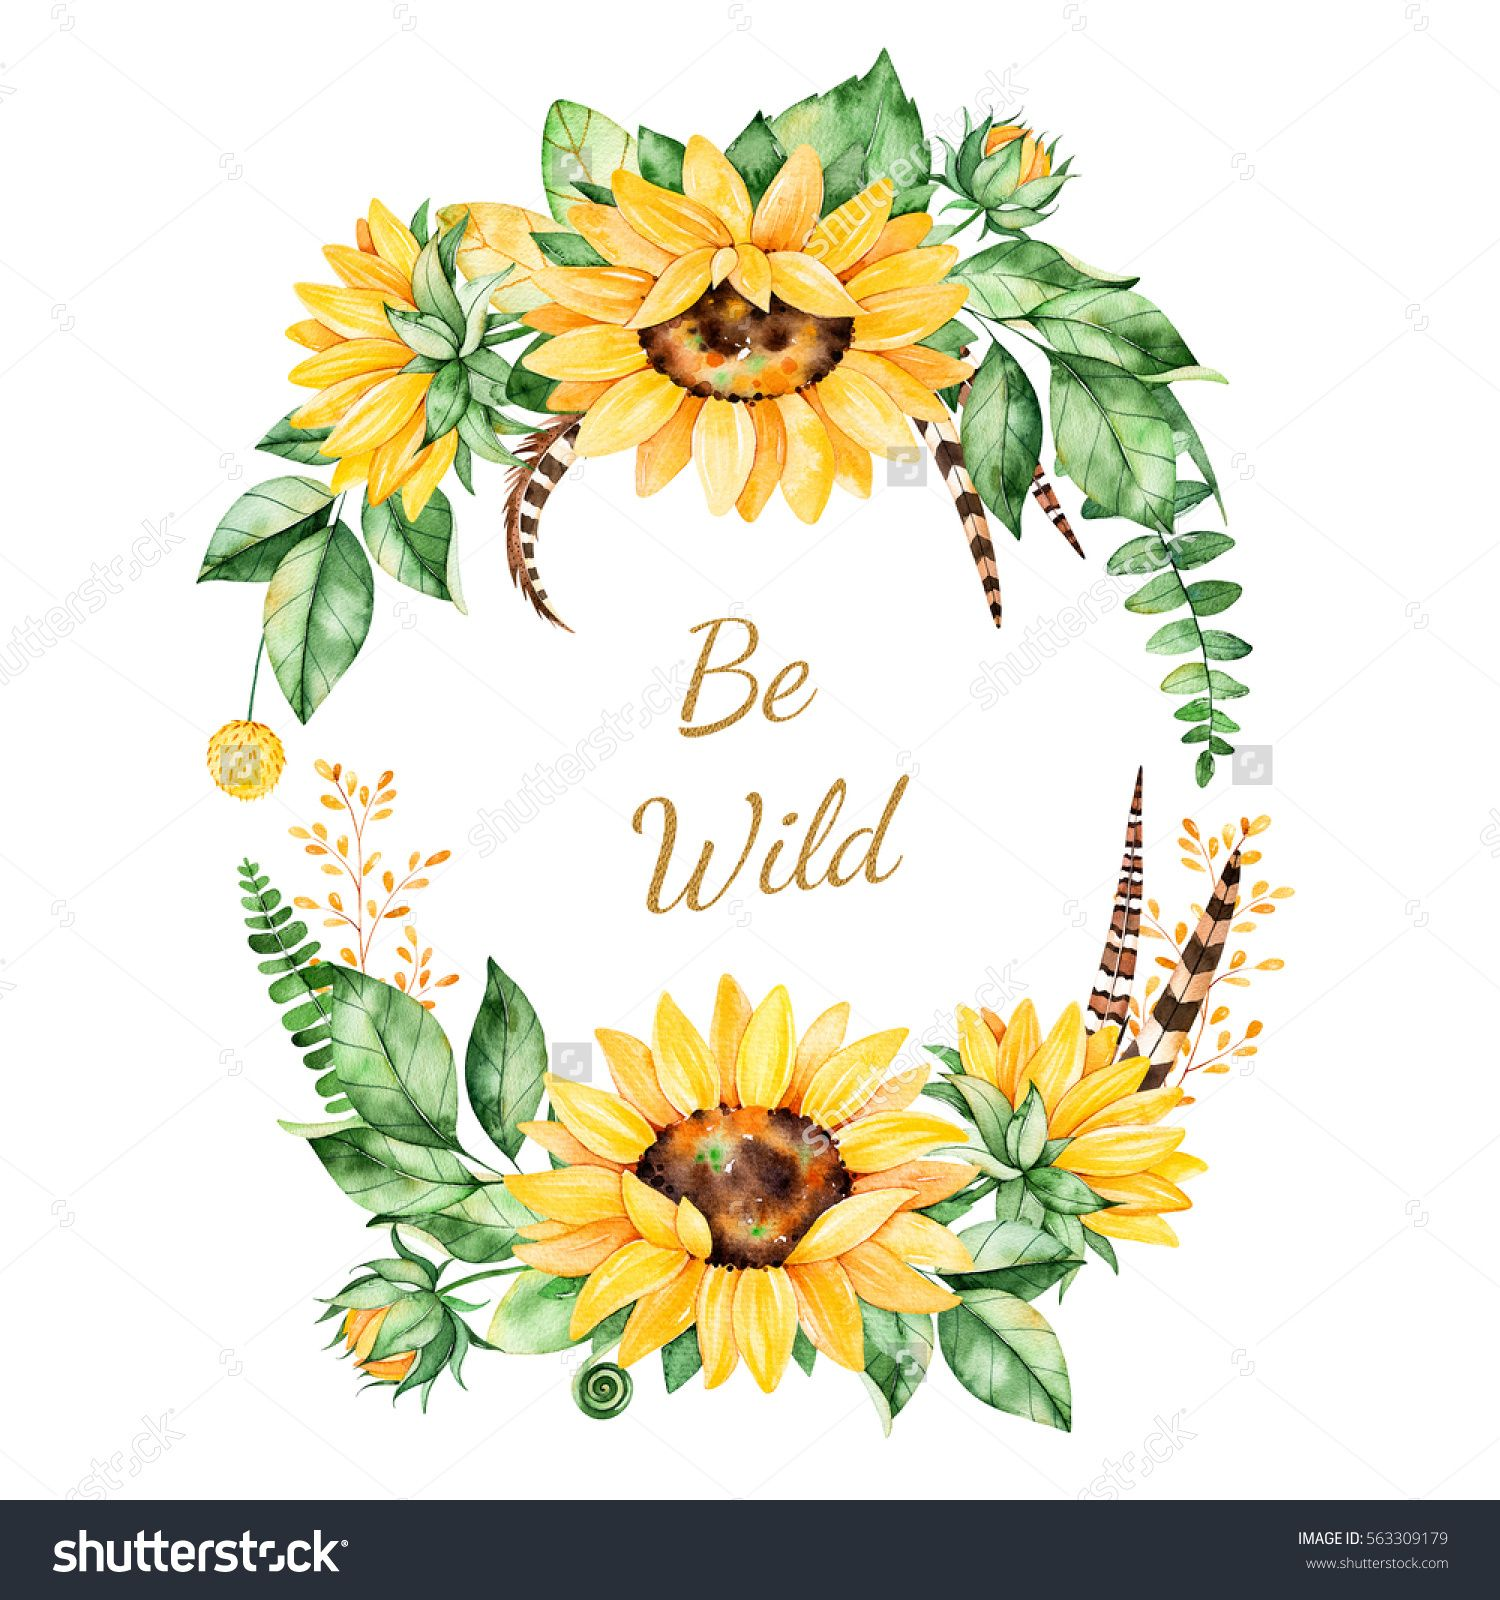 Colorful Floral Template Card With Sunflowers Leaves Foliage